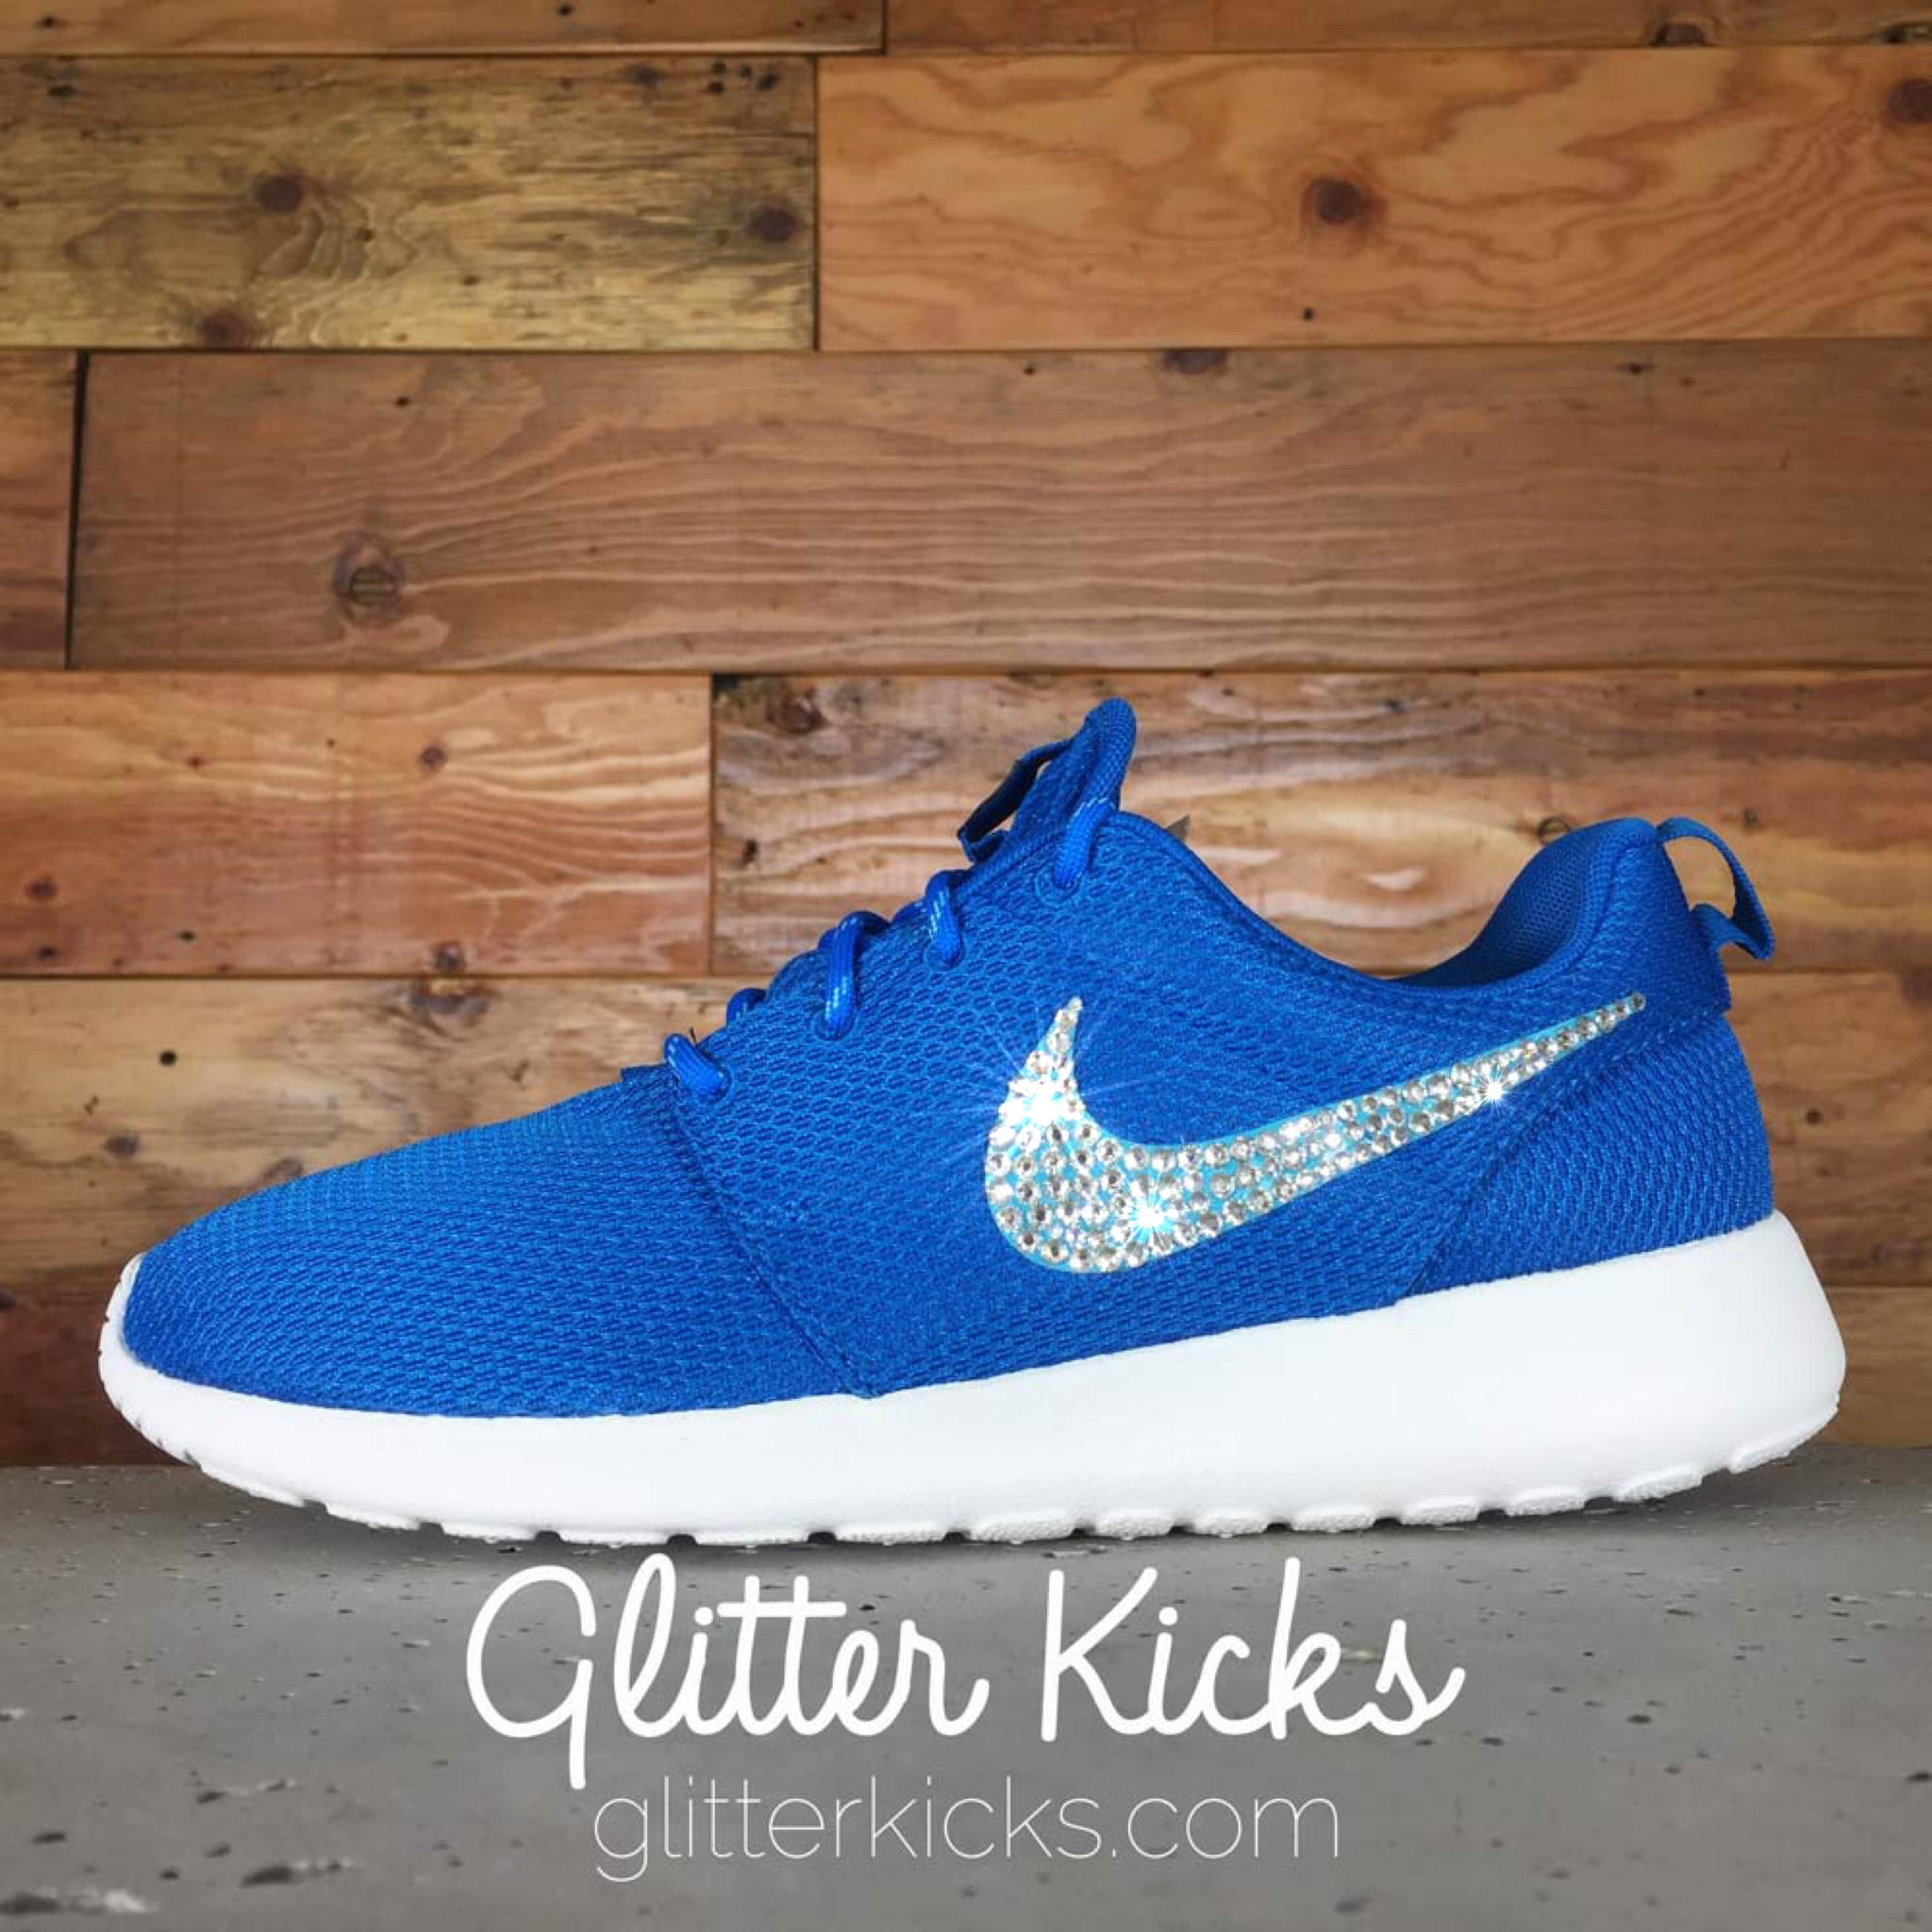 ... new style nike roshe one customized by glitter from glitter kicks shoes  7180d 23ce4 97b9f0580